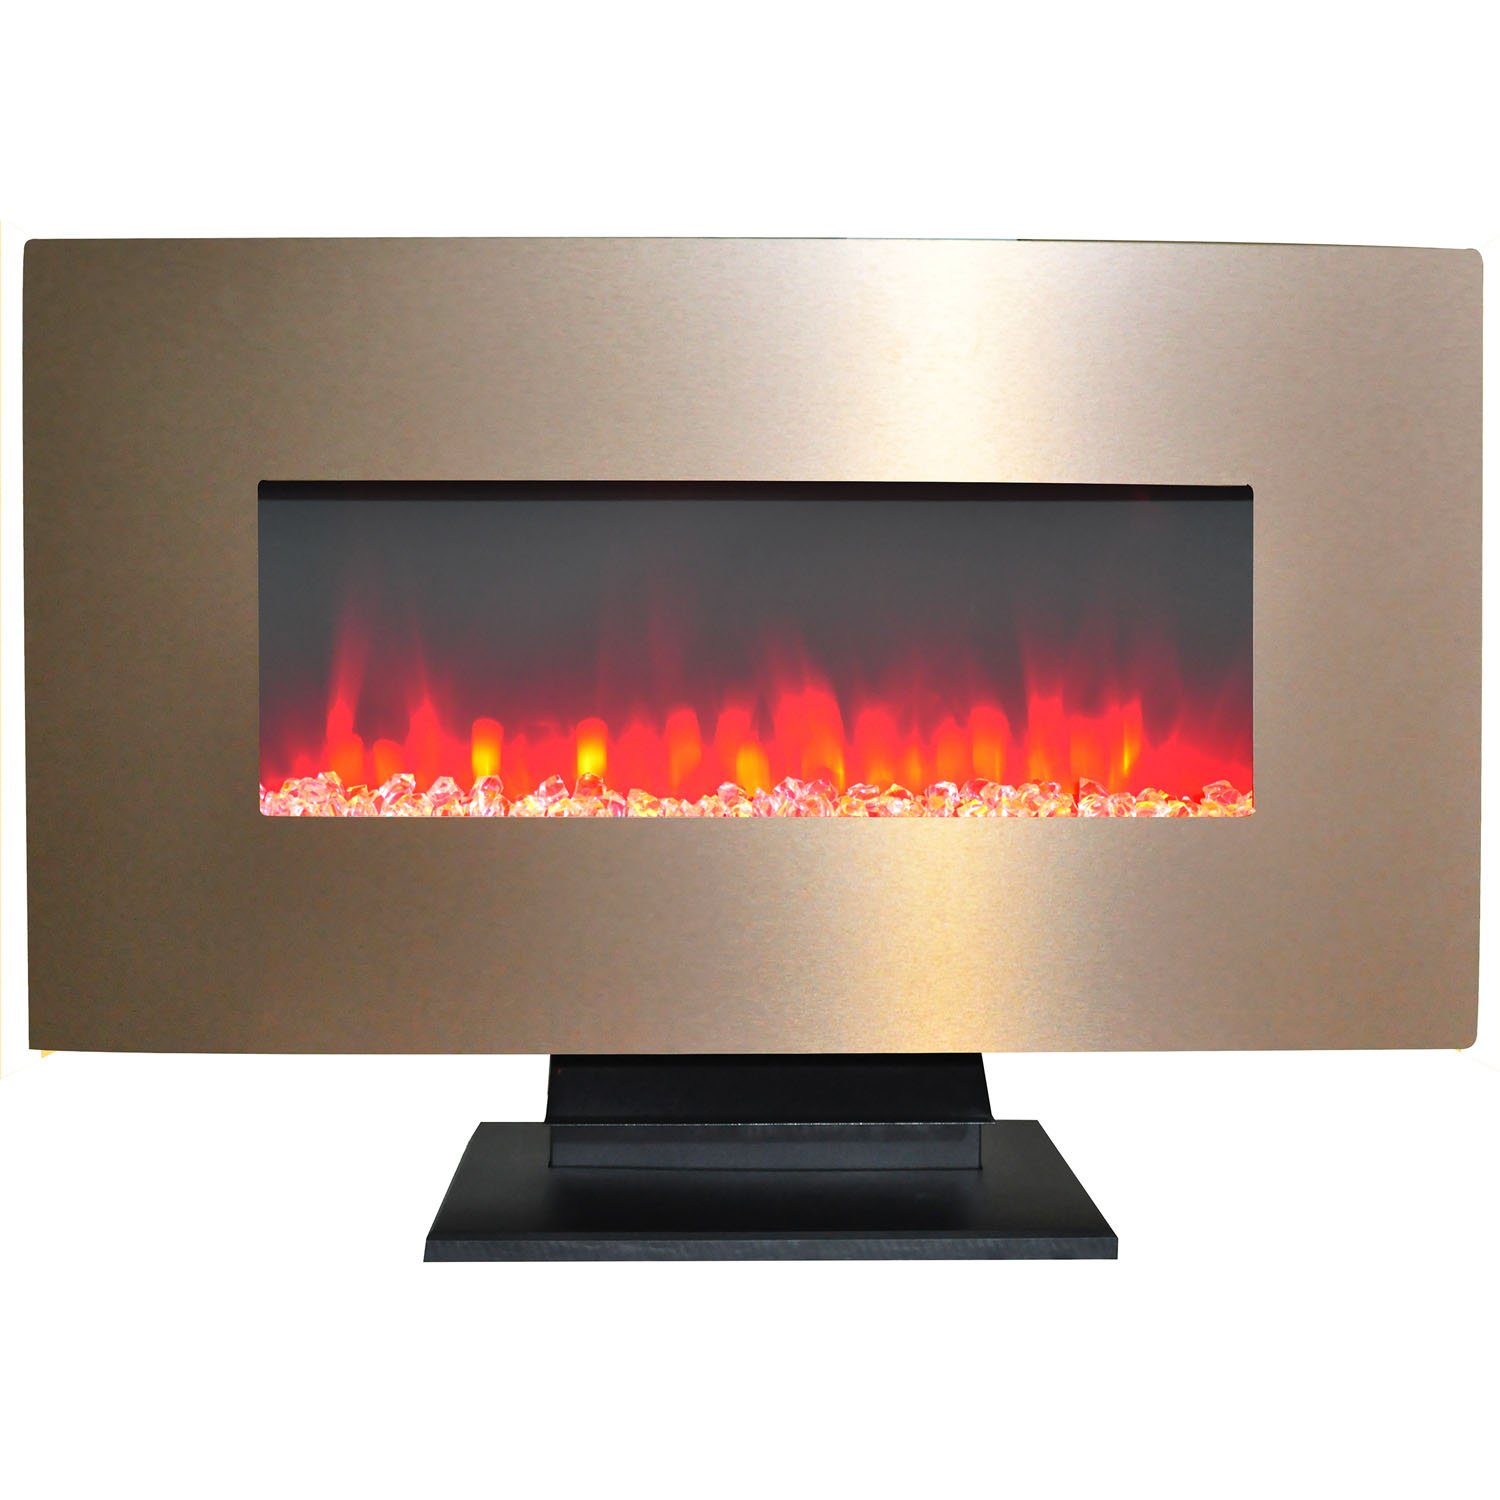 Cambridge CAM36WMEF-1BR 36 In. Metallic Electric Fireplace in Bronze with Multi-Color Crystal Rock Display